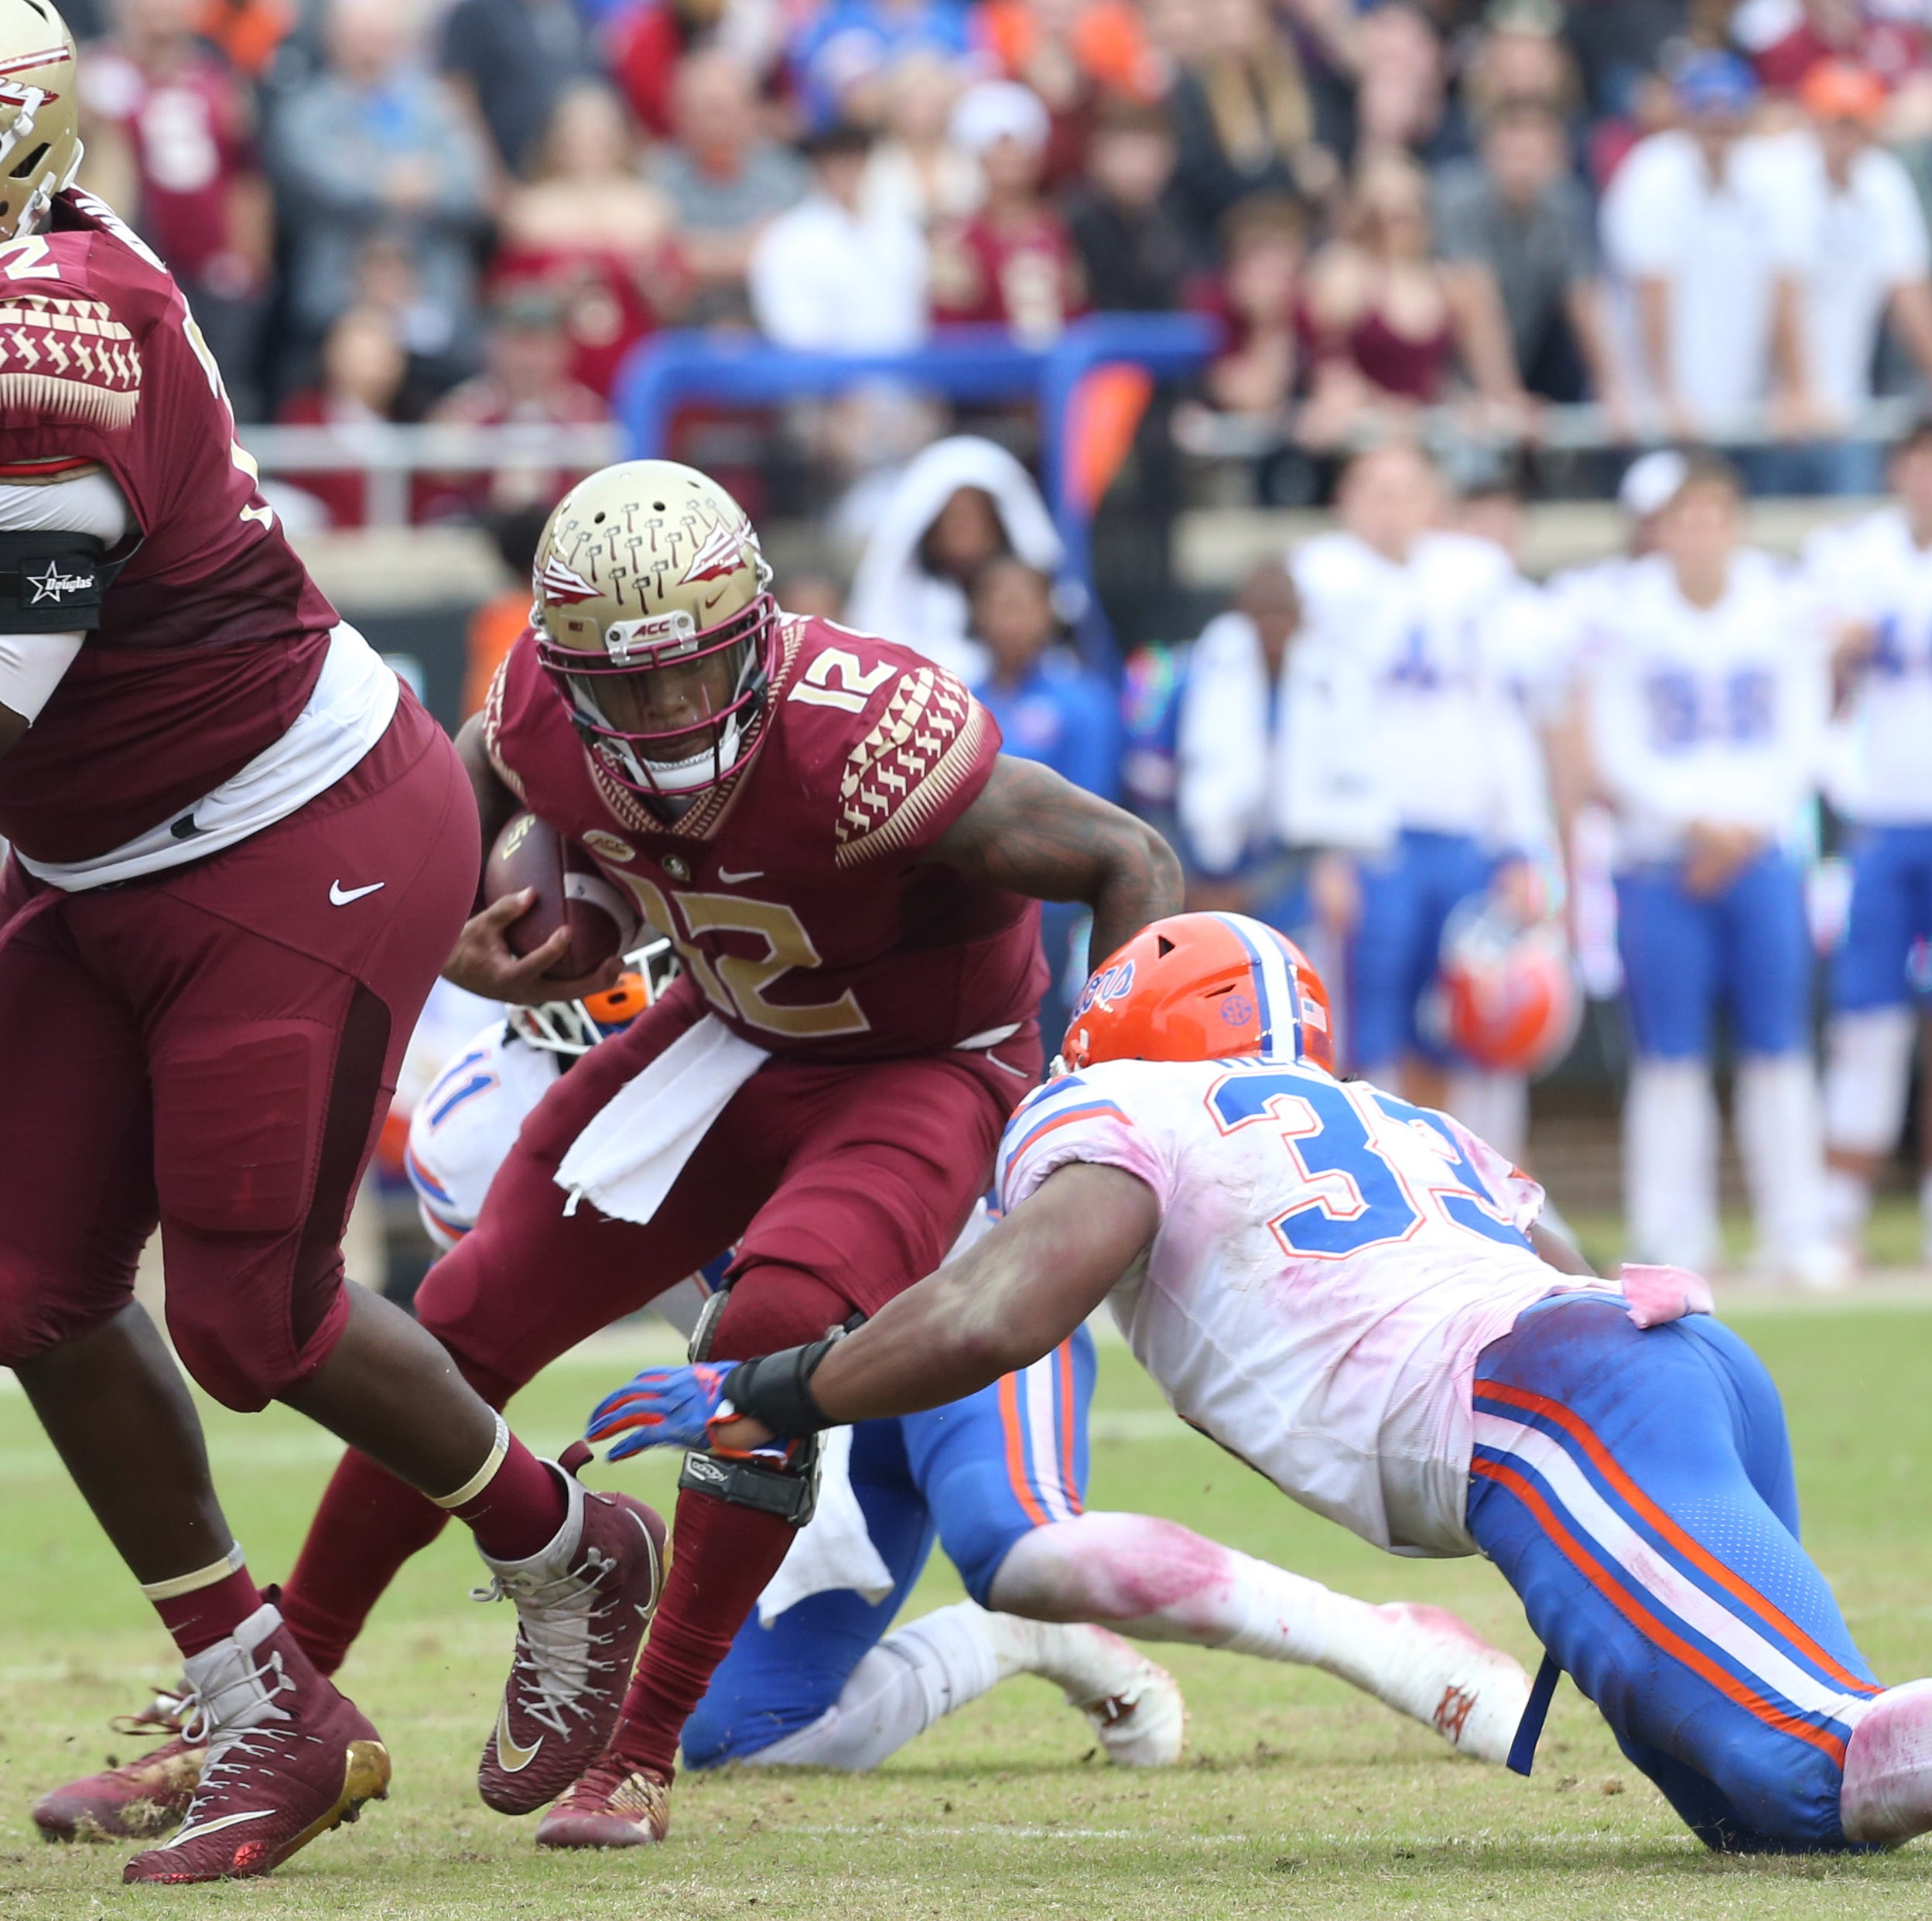 FSU focuses on football season ticket renewals